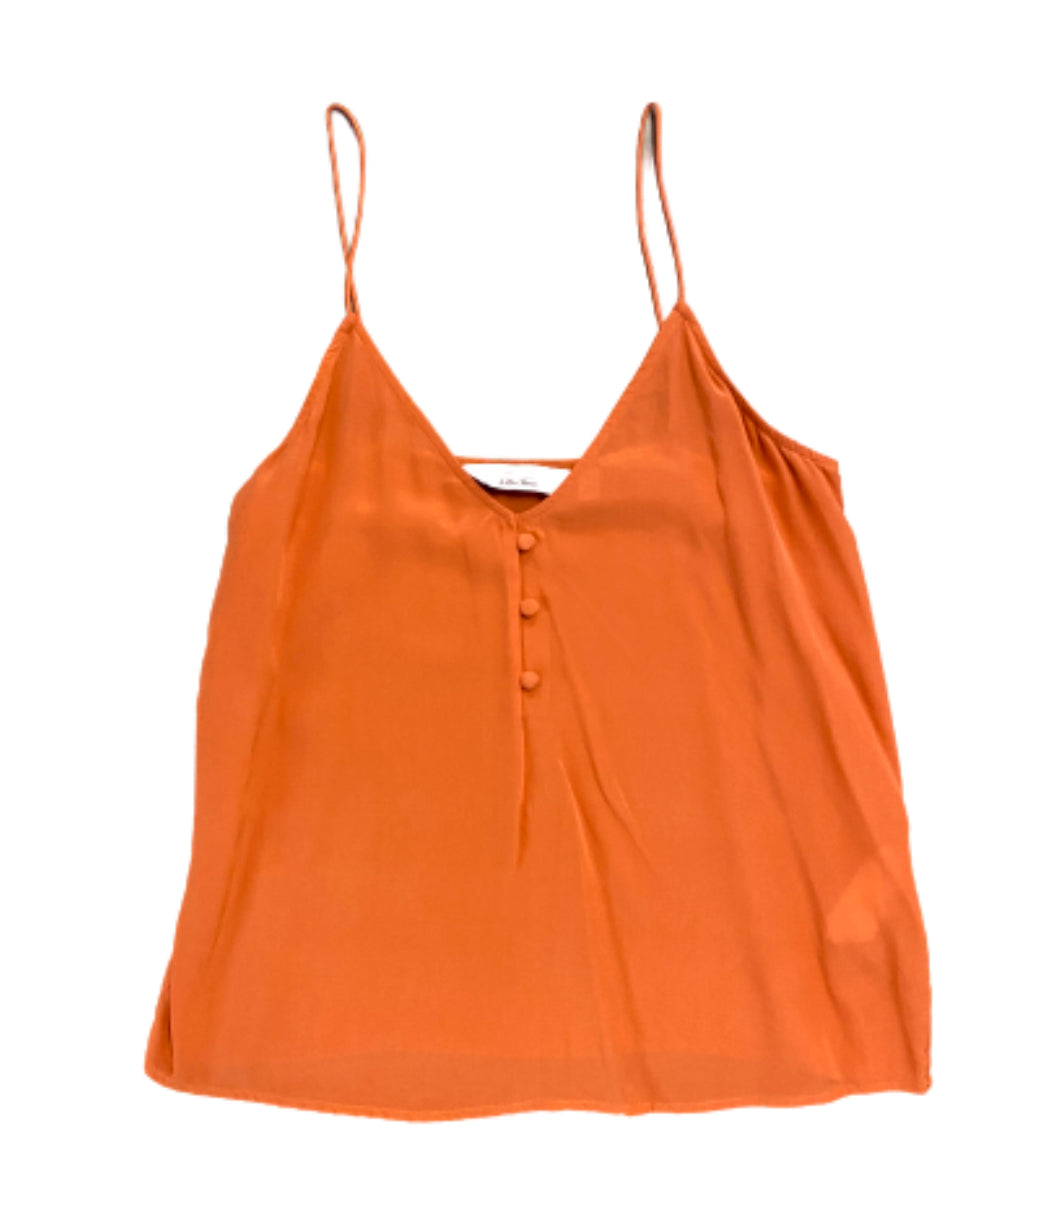 SILICON VALLEY: Monica's Orange Paris Atelier Silk Camisole